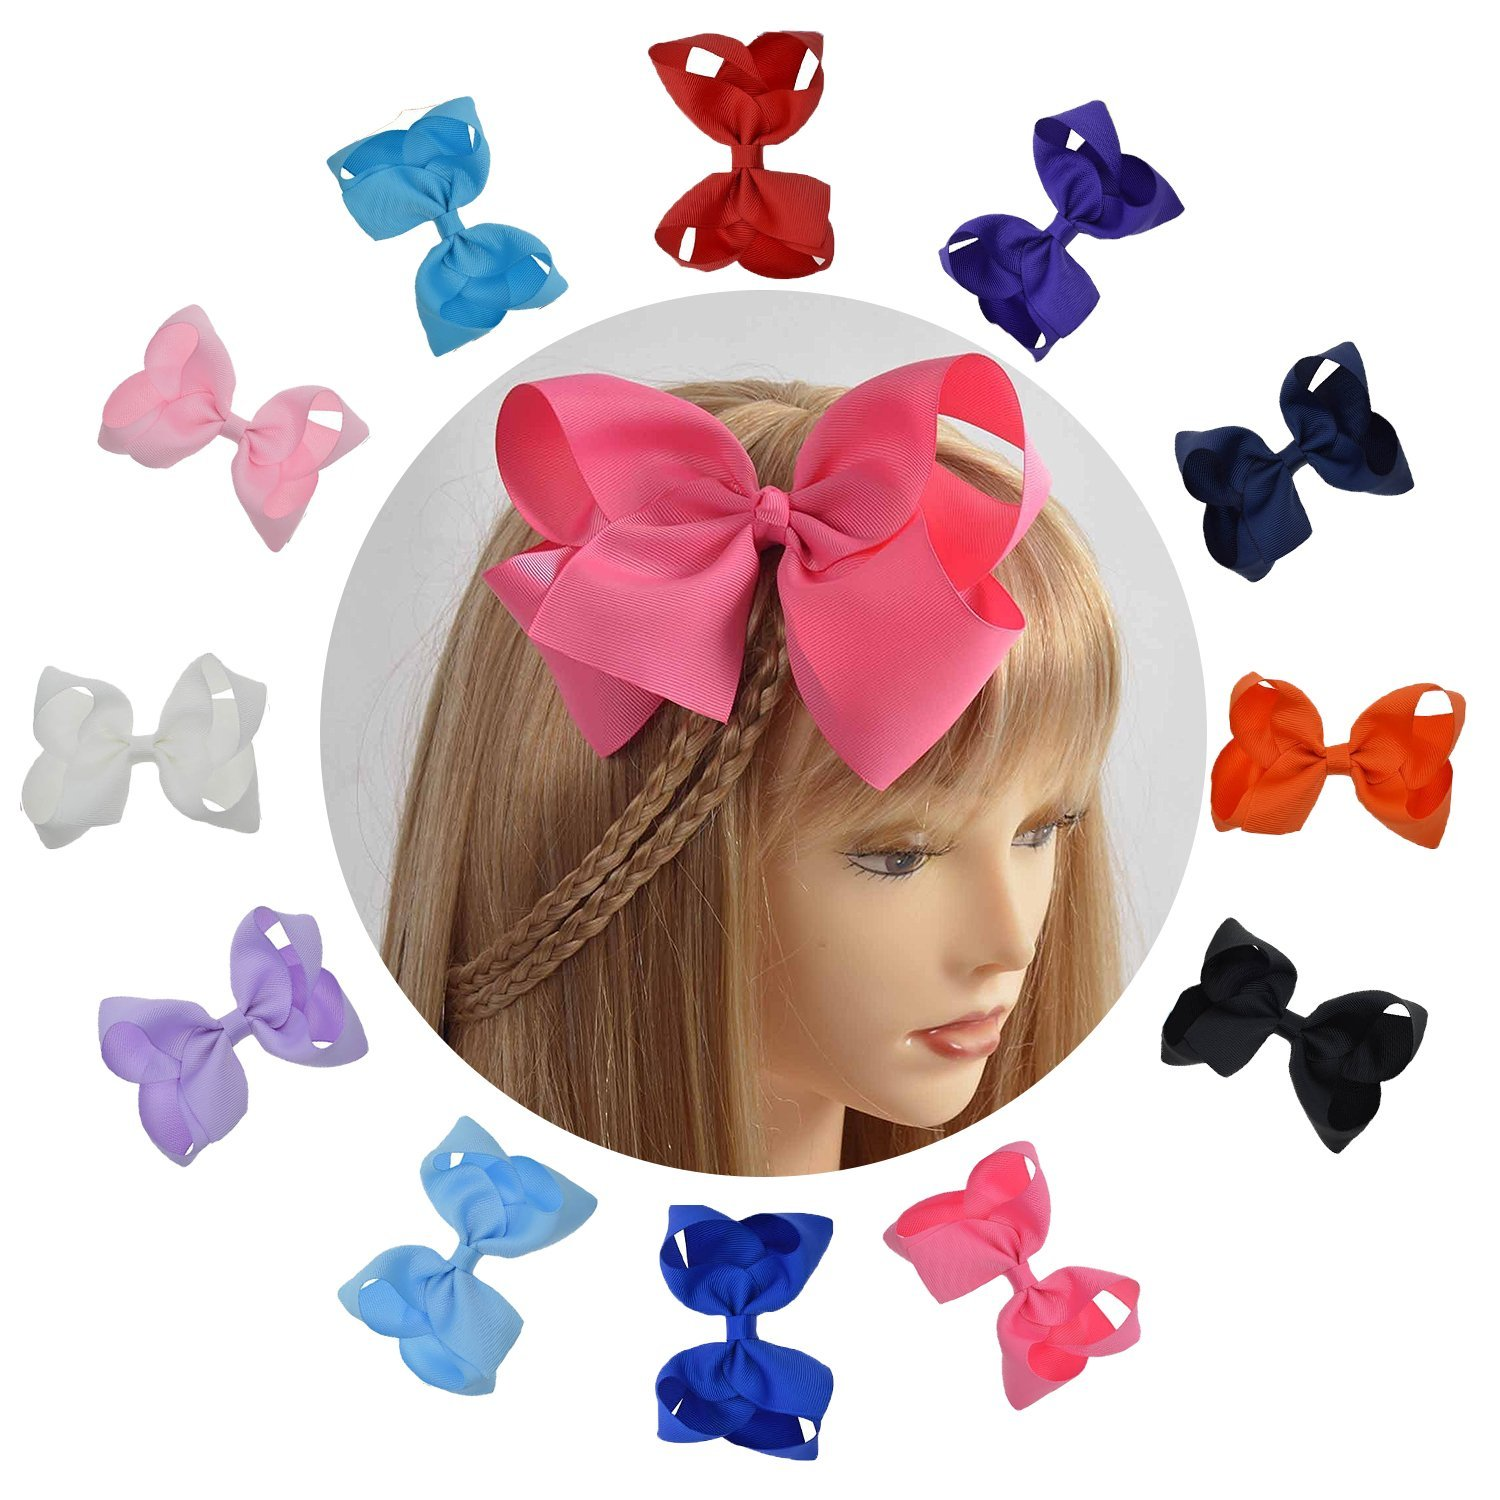 LCLHB Trendy Big Hair Bows With Oversized Ribbon Alligator Clip For Women Babies Little Girls (6 Inch)